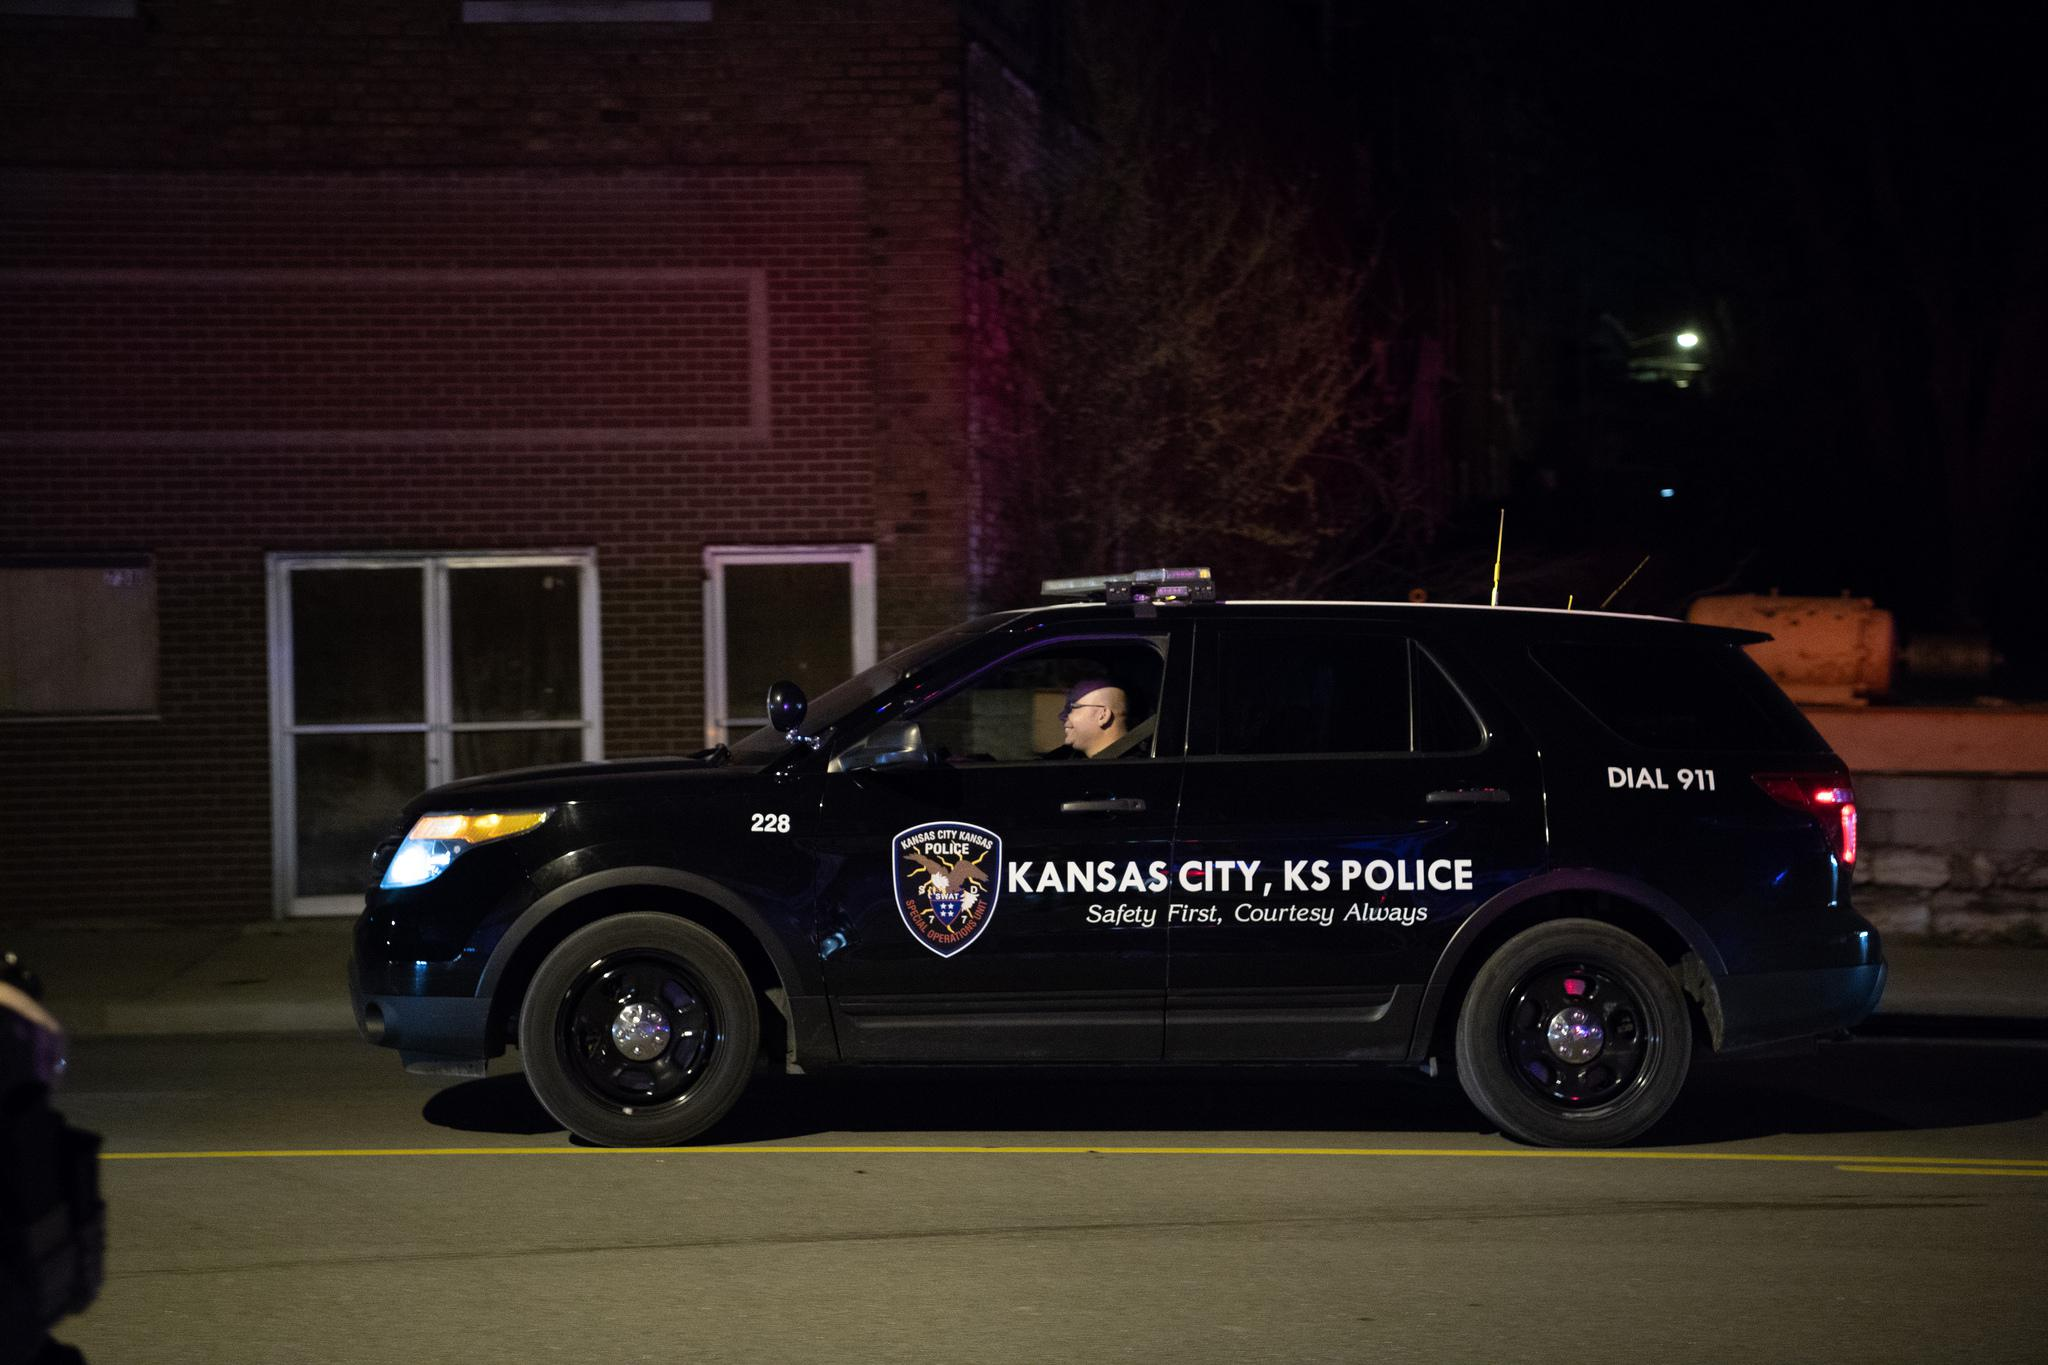 Kansas City Kansas Police Shot And Killed Suspect At His Apartment